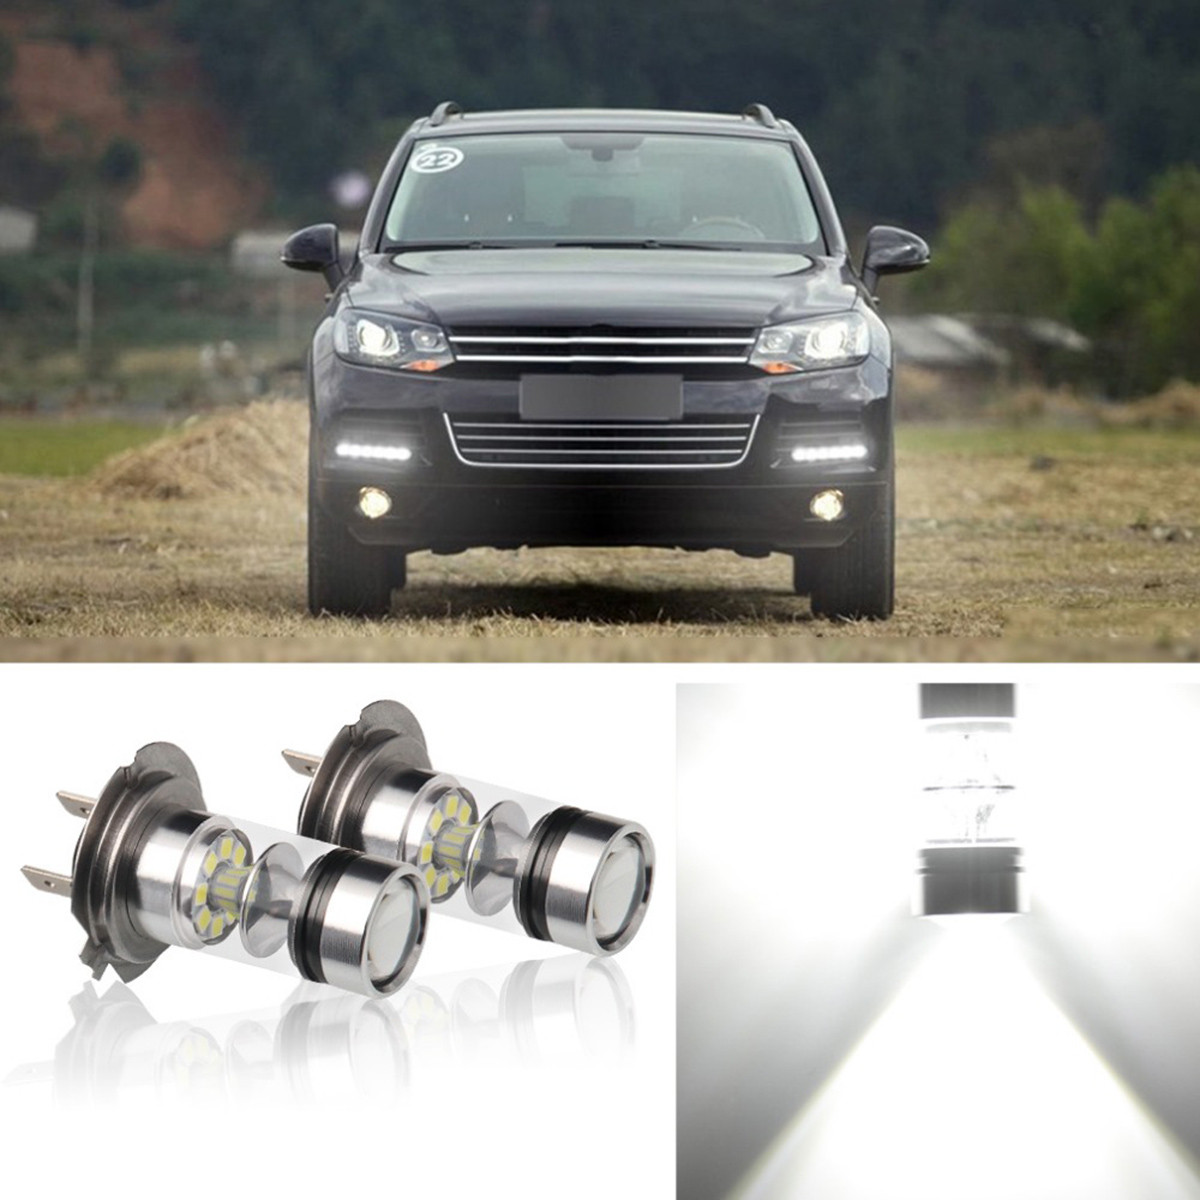 1PCS Car Led H4 H7 H8 H11 LED 9005/HB3 9006/HB4 Fog Lights White 100W Bulbs 20 SMD Lamp Driving Turning Ampoule